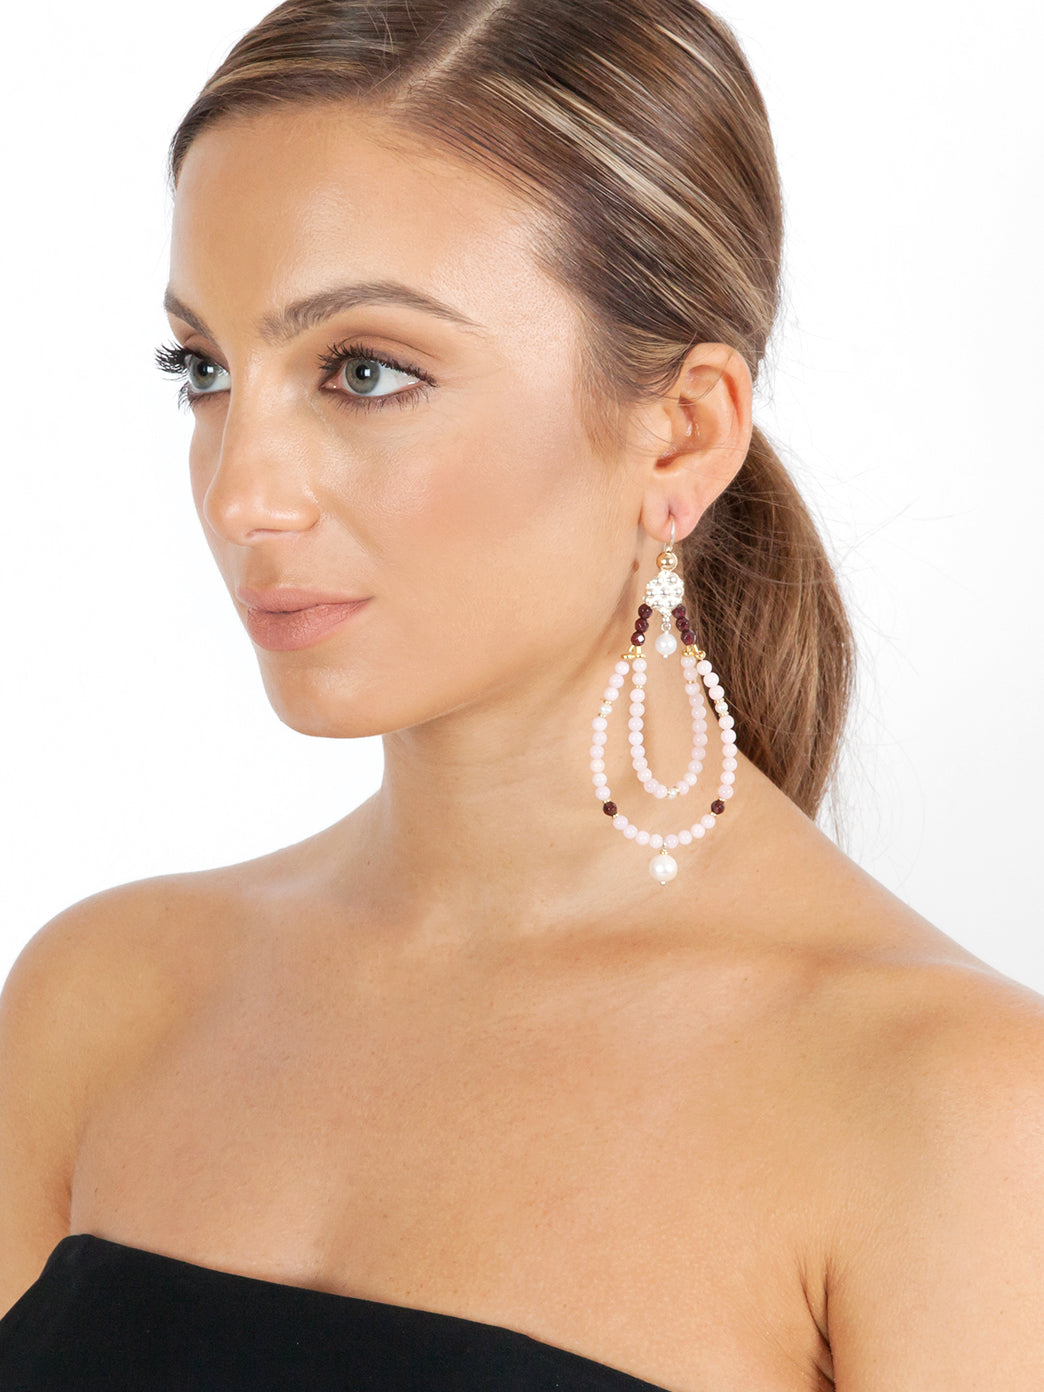 Fiorina Jewellery Rahini Earrings Pink Opal Model